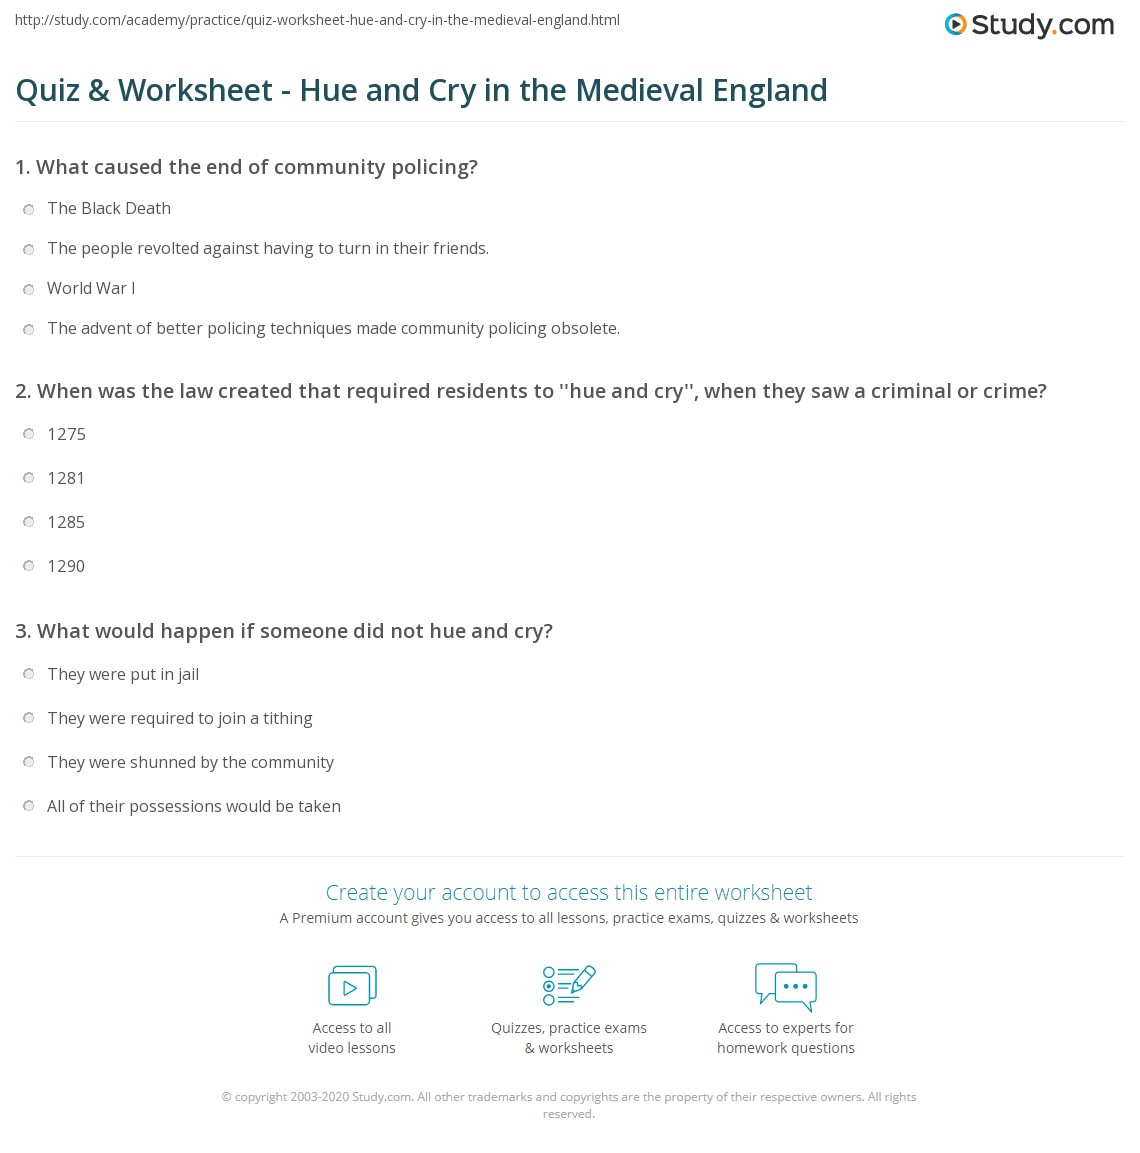 quiz & worksheet - hue and cry in the medieval england | study